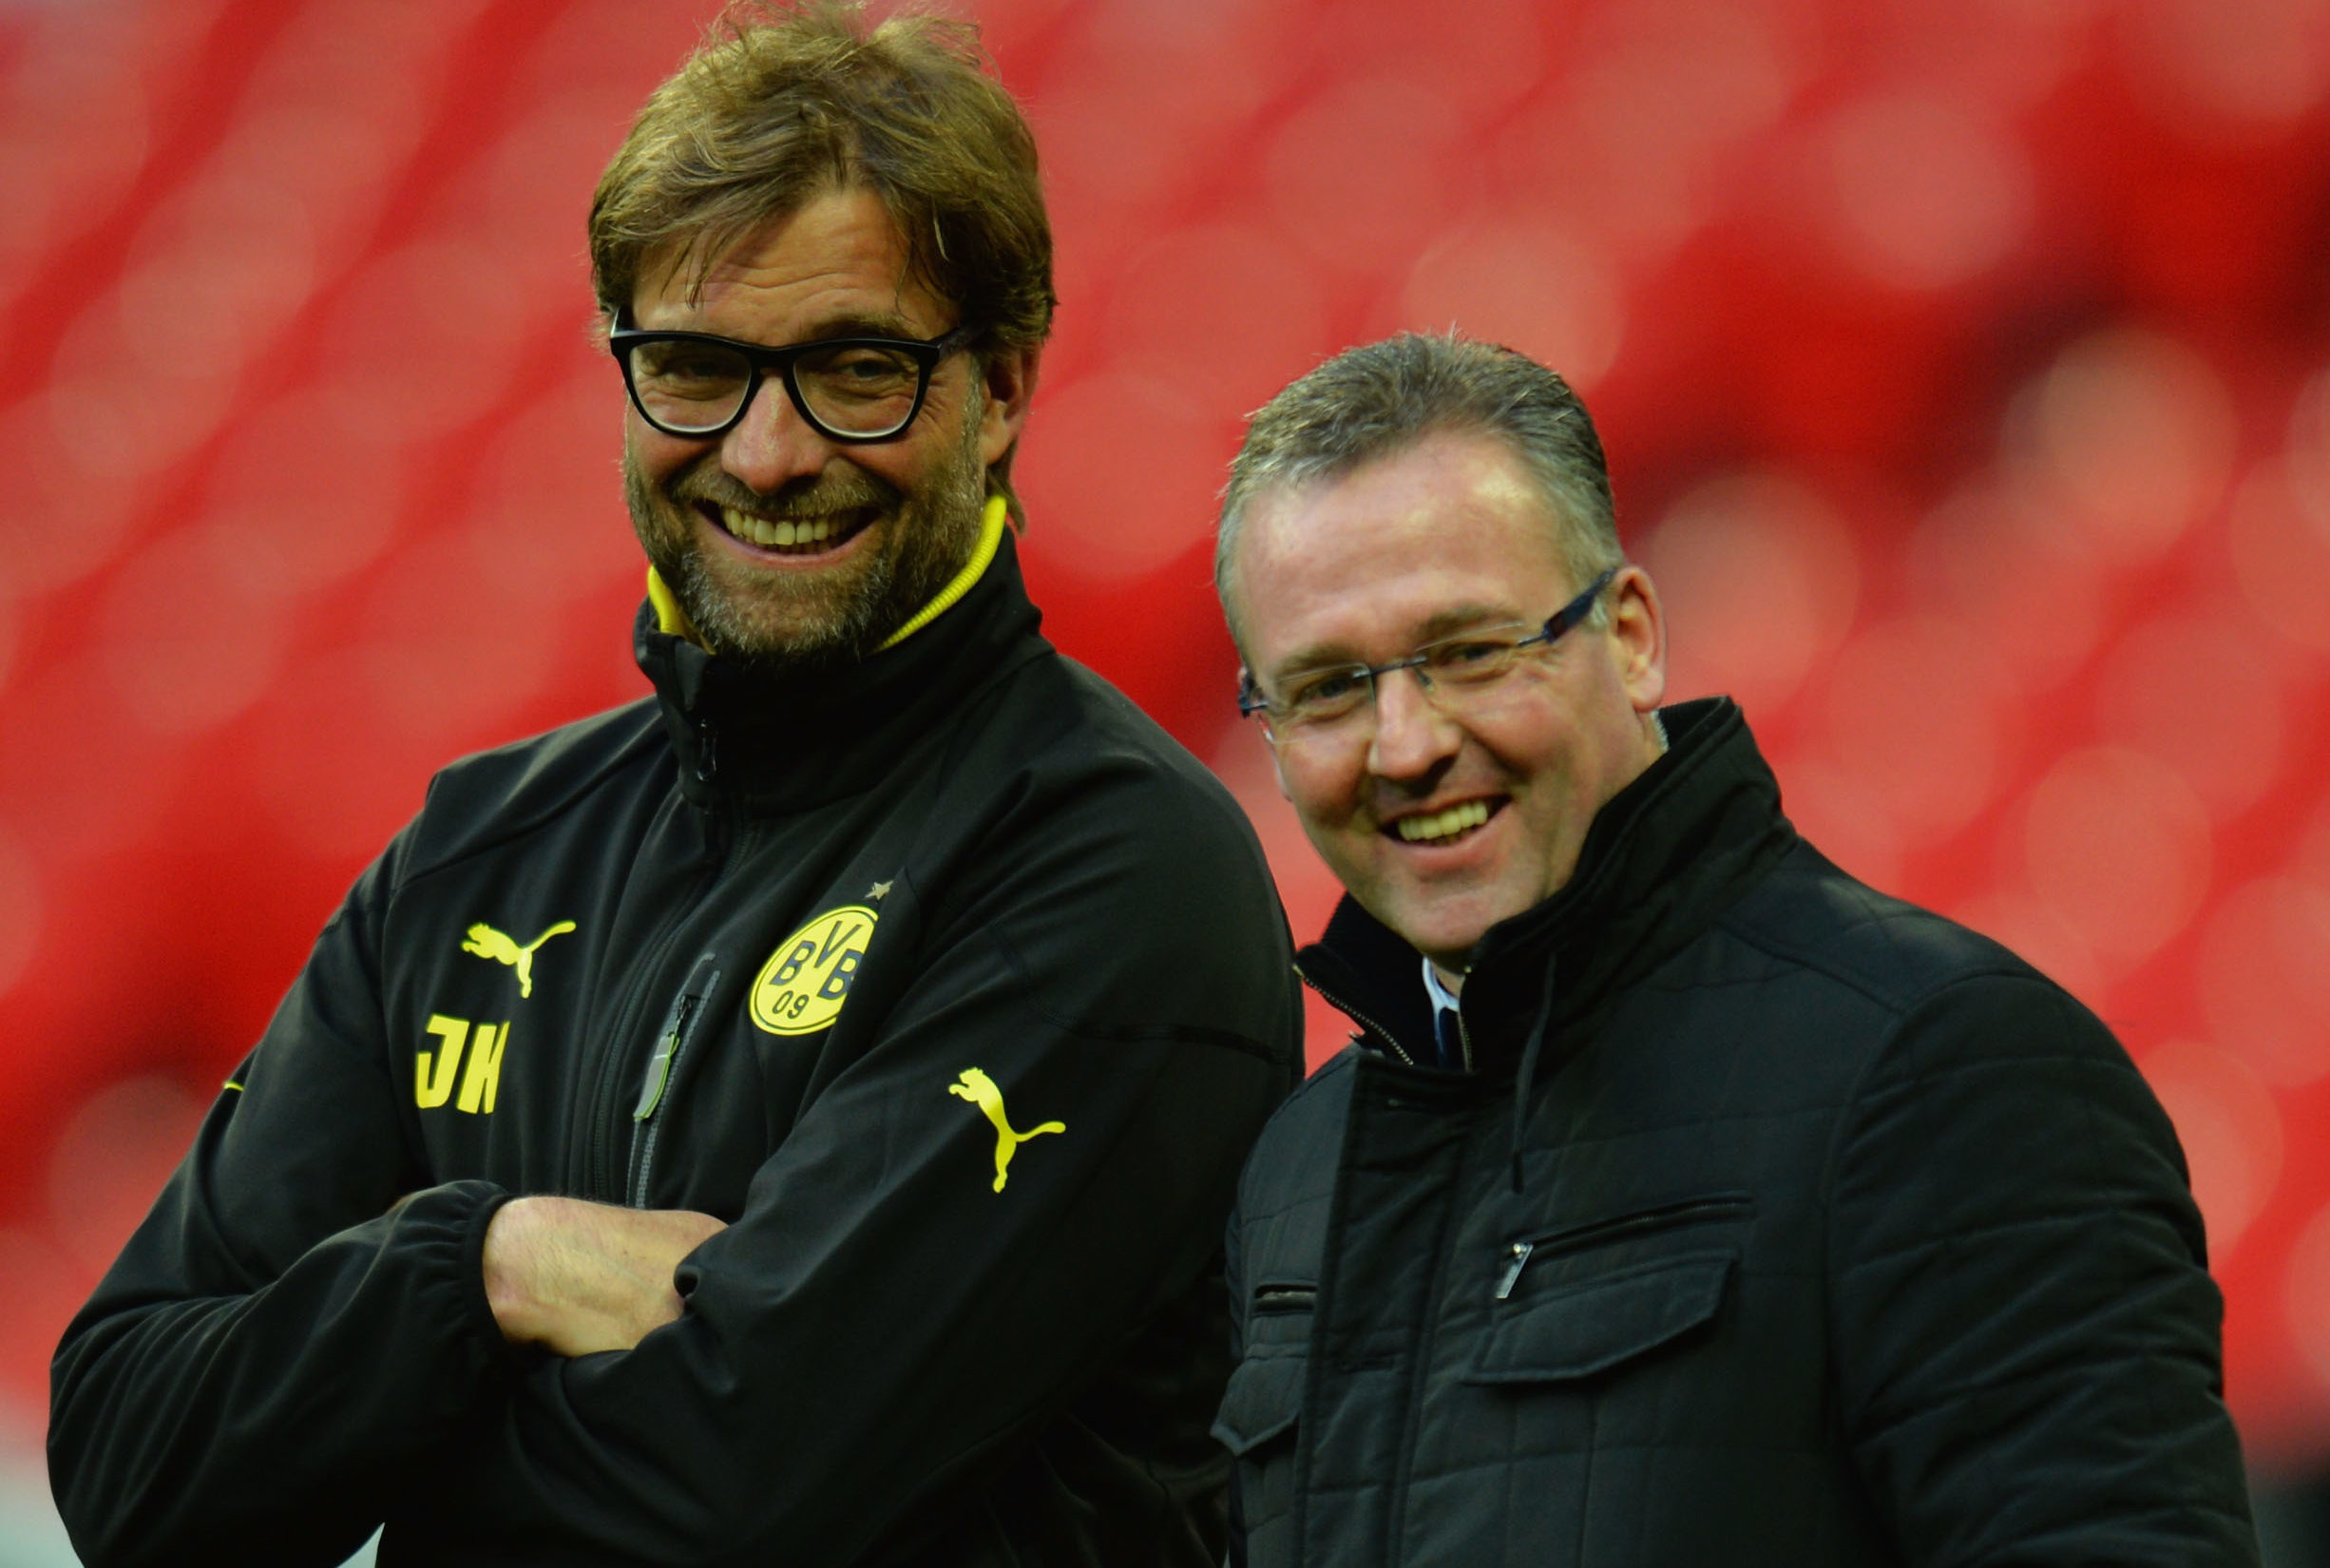 Paul Lambert with Jurgen Klopp as the German prepared for the Champions League Final at Wembley in 2013 (Shaun Botterill/Getty Images)